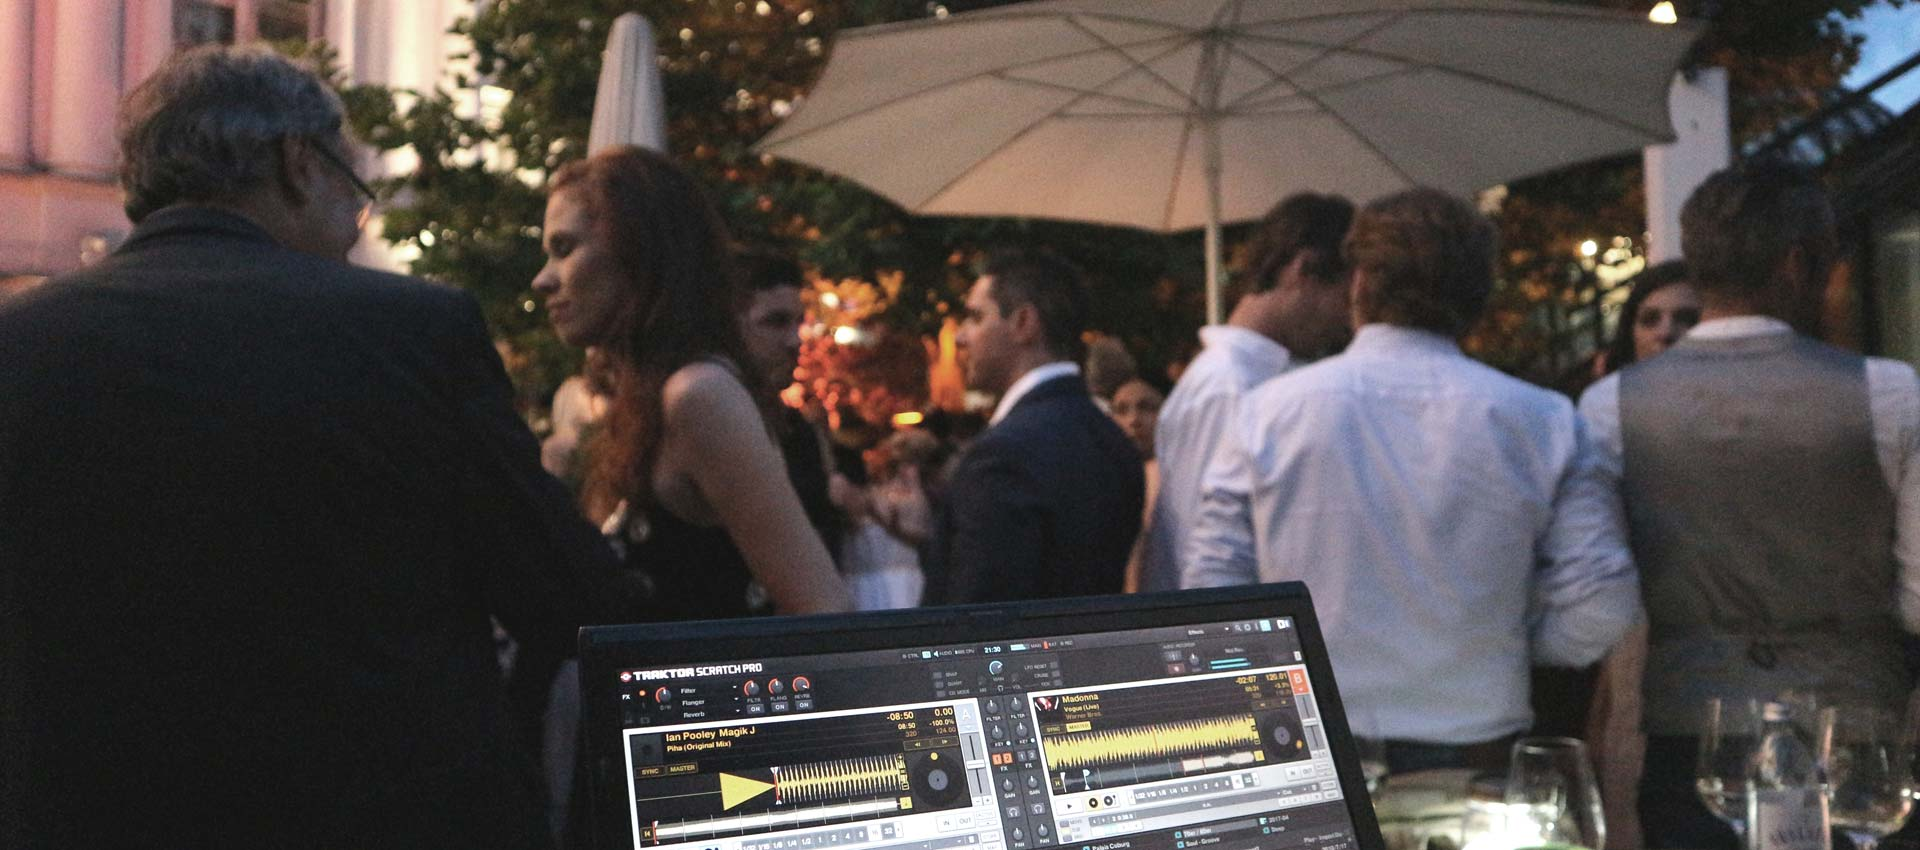 Business Event DJ @ Palais Coburg